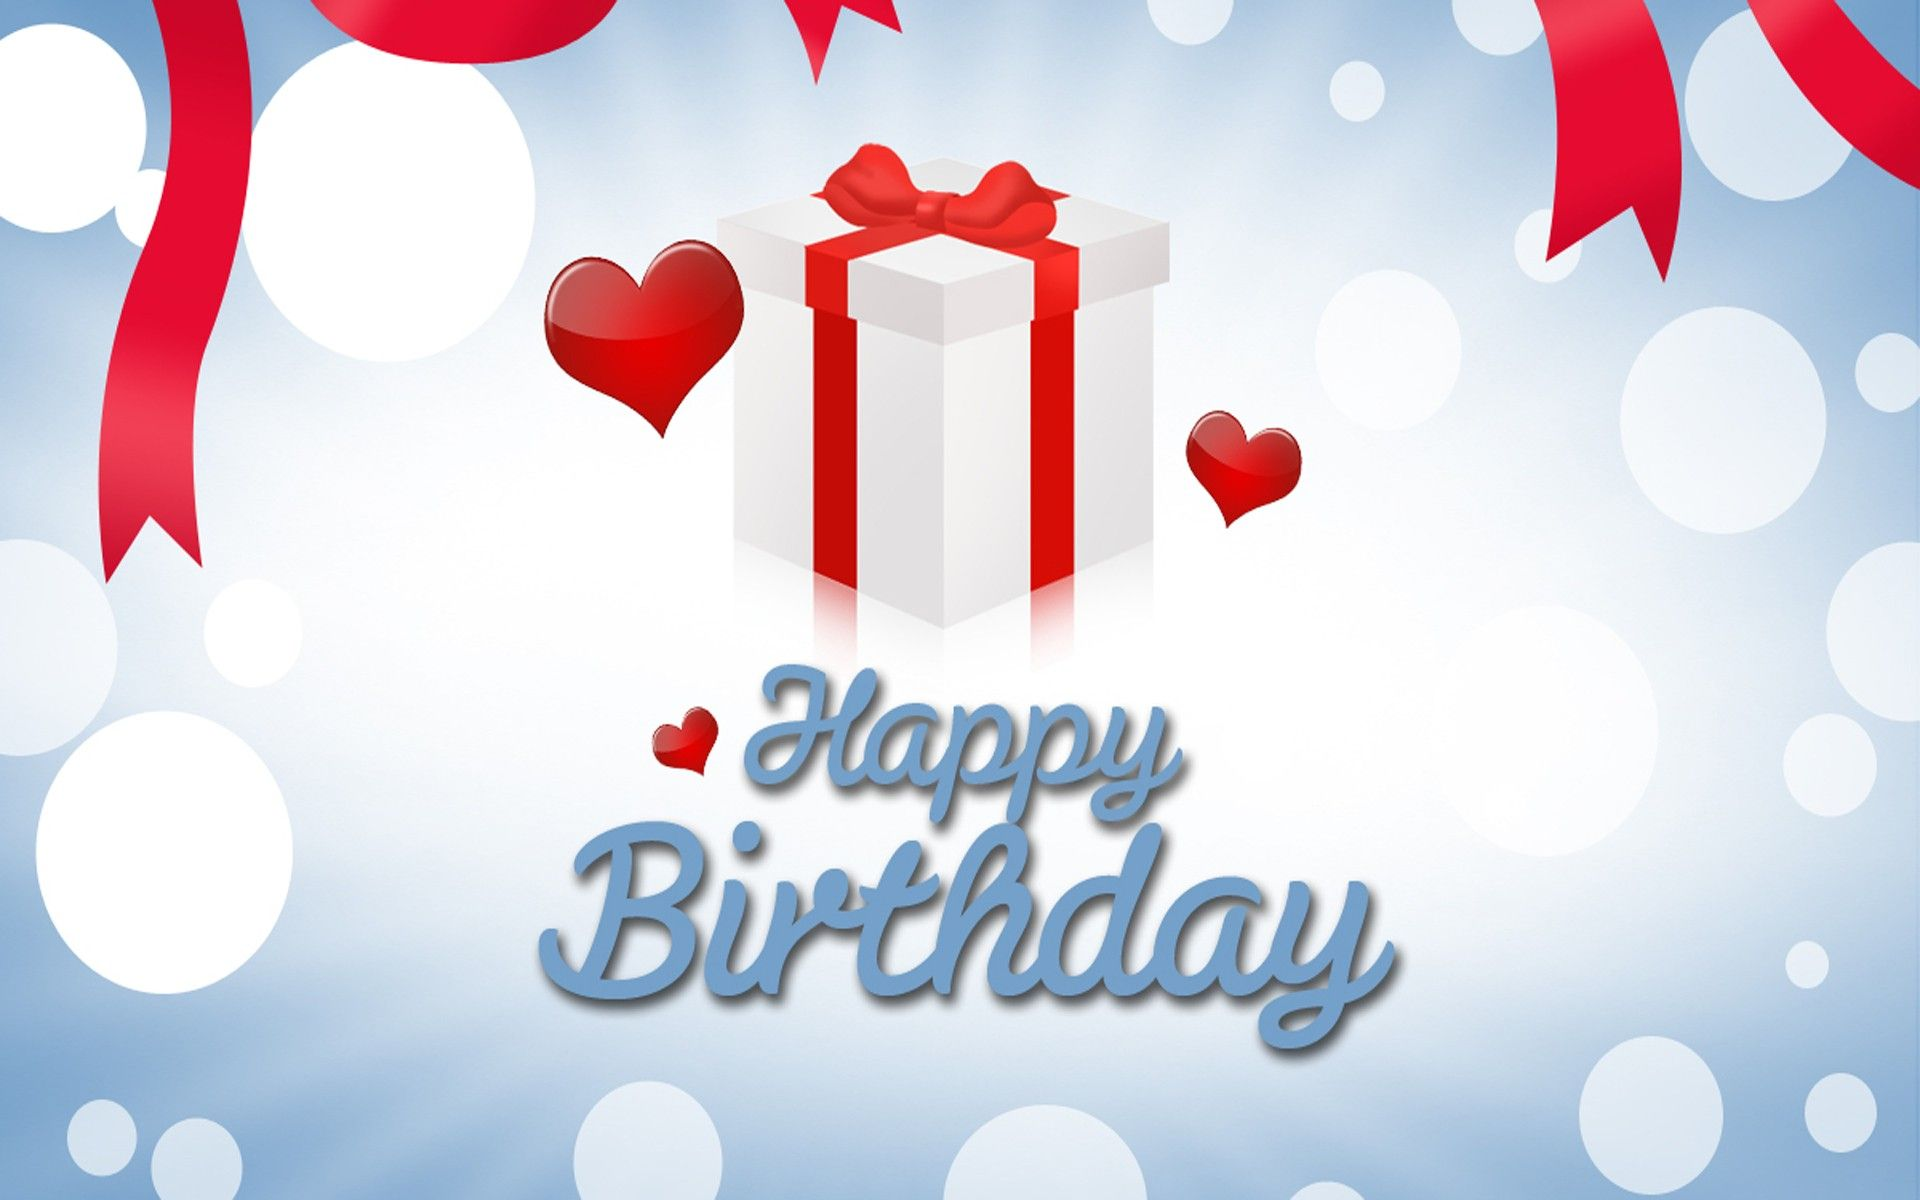 Images Of Birthday Wishes Hd Wallpapers Free Download Happy Birthday Messages Birthday Wishes Happy Birthday Wallpaper